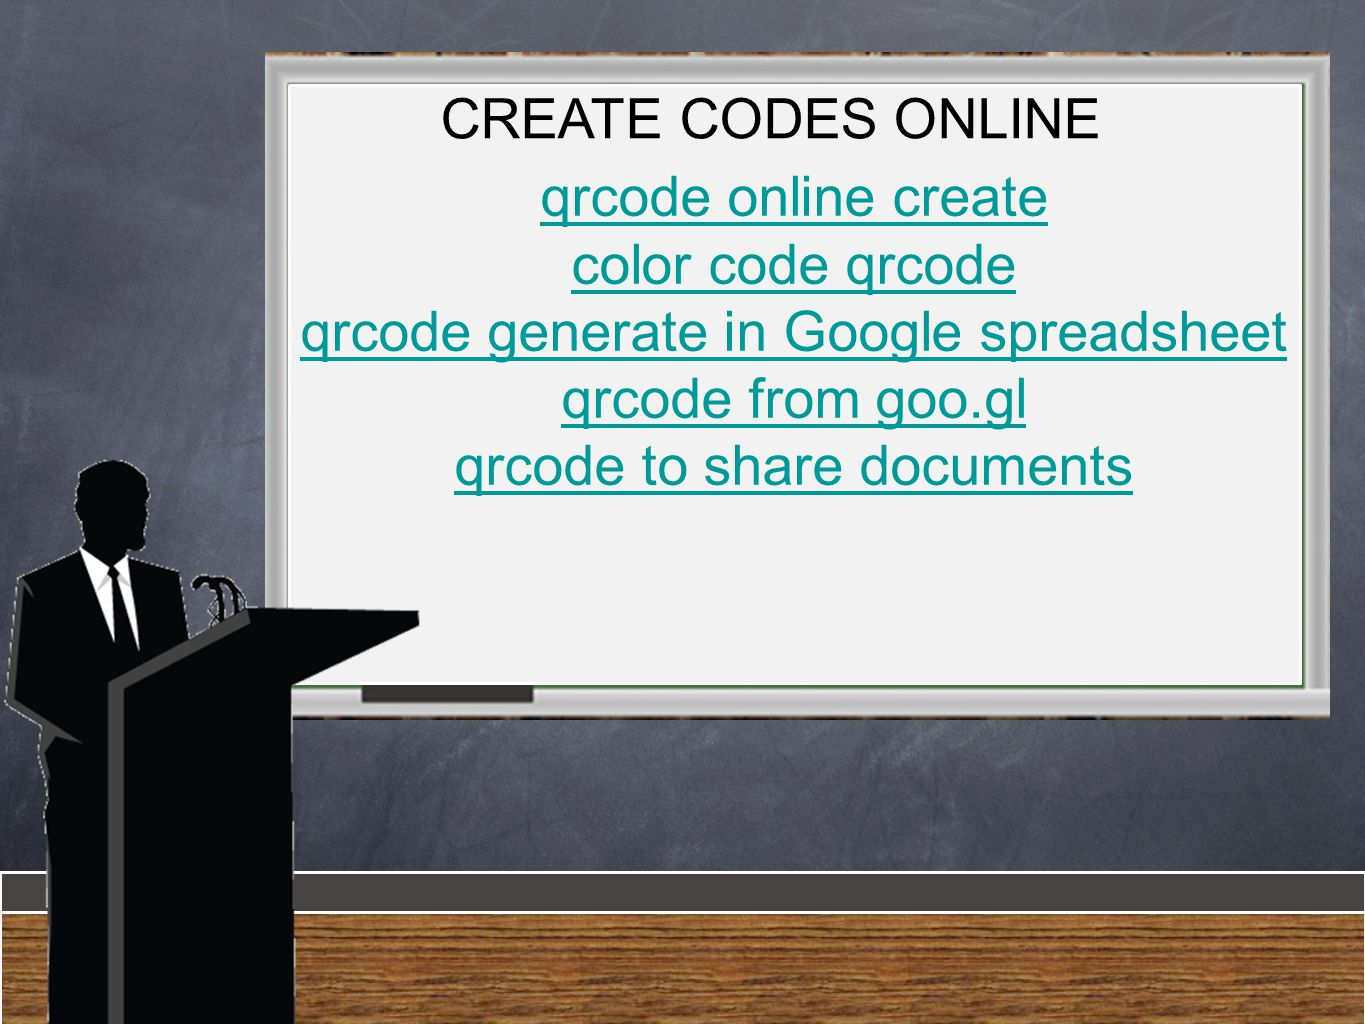 qrcode online create color code qrcode qrcode generate in Google spreadsheet qrcode from goo.gl qrcode to share documents CREATE CODES ONLINE